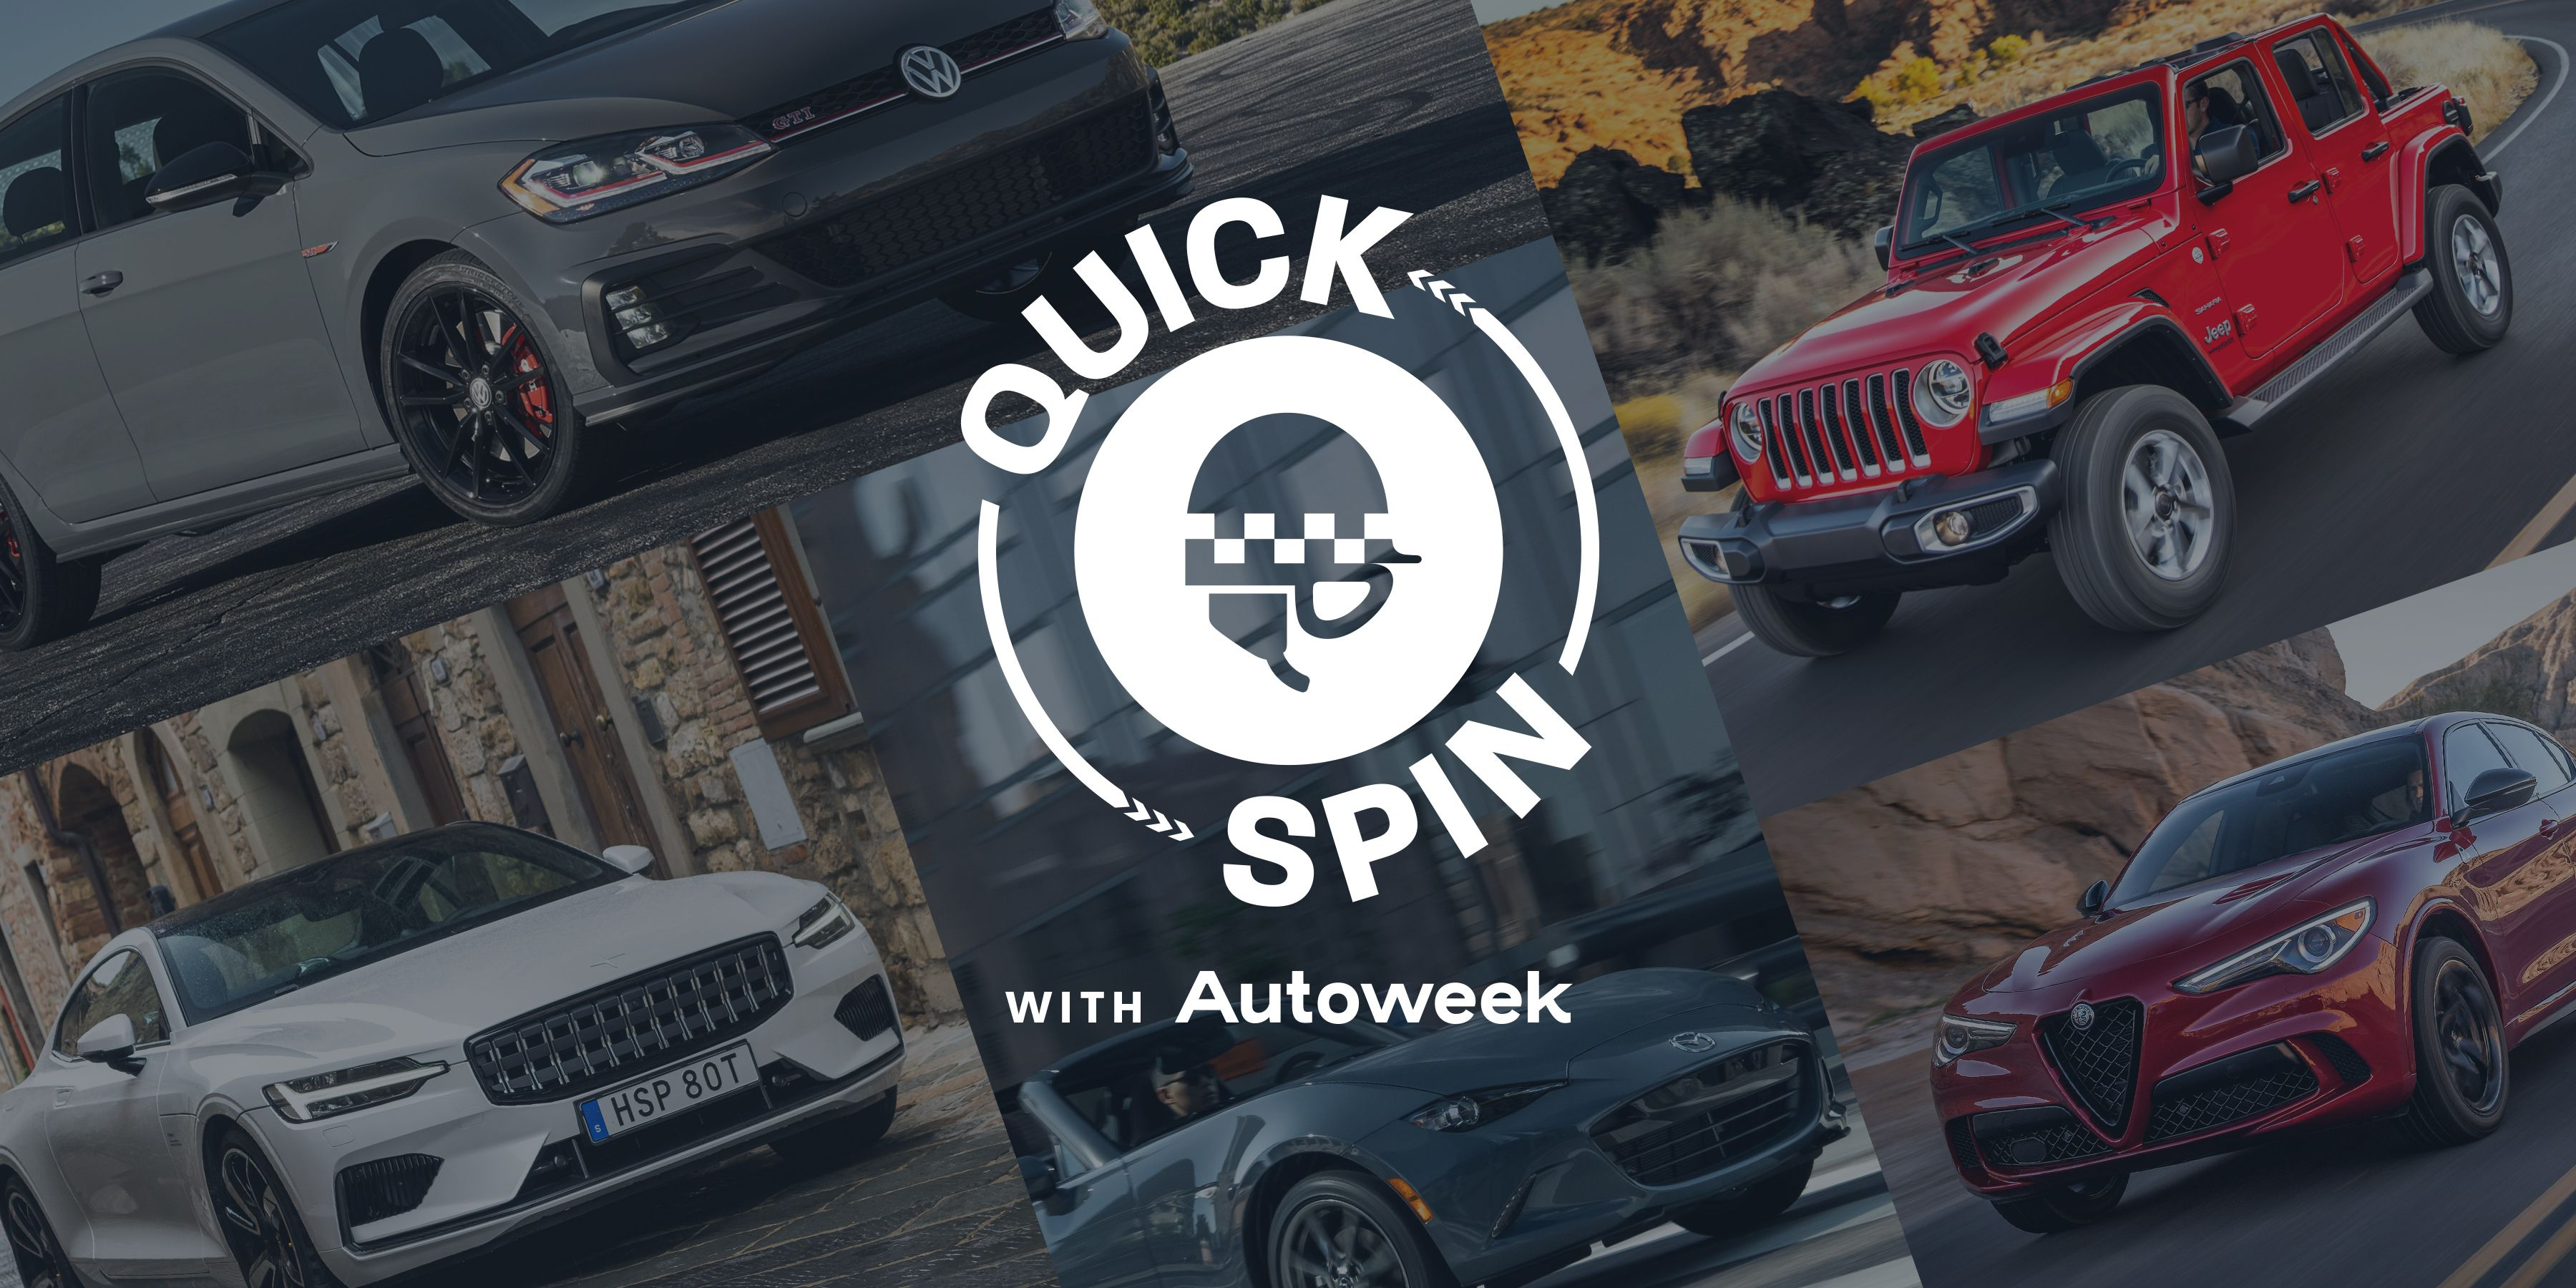 Check Out 'Quick Spin,' the Podcast That Puts You Inside the Car